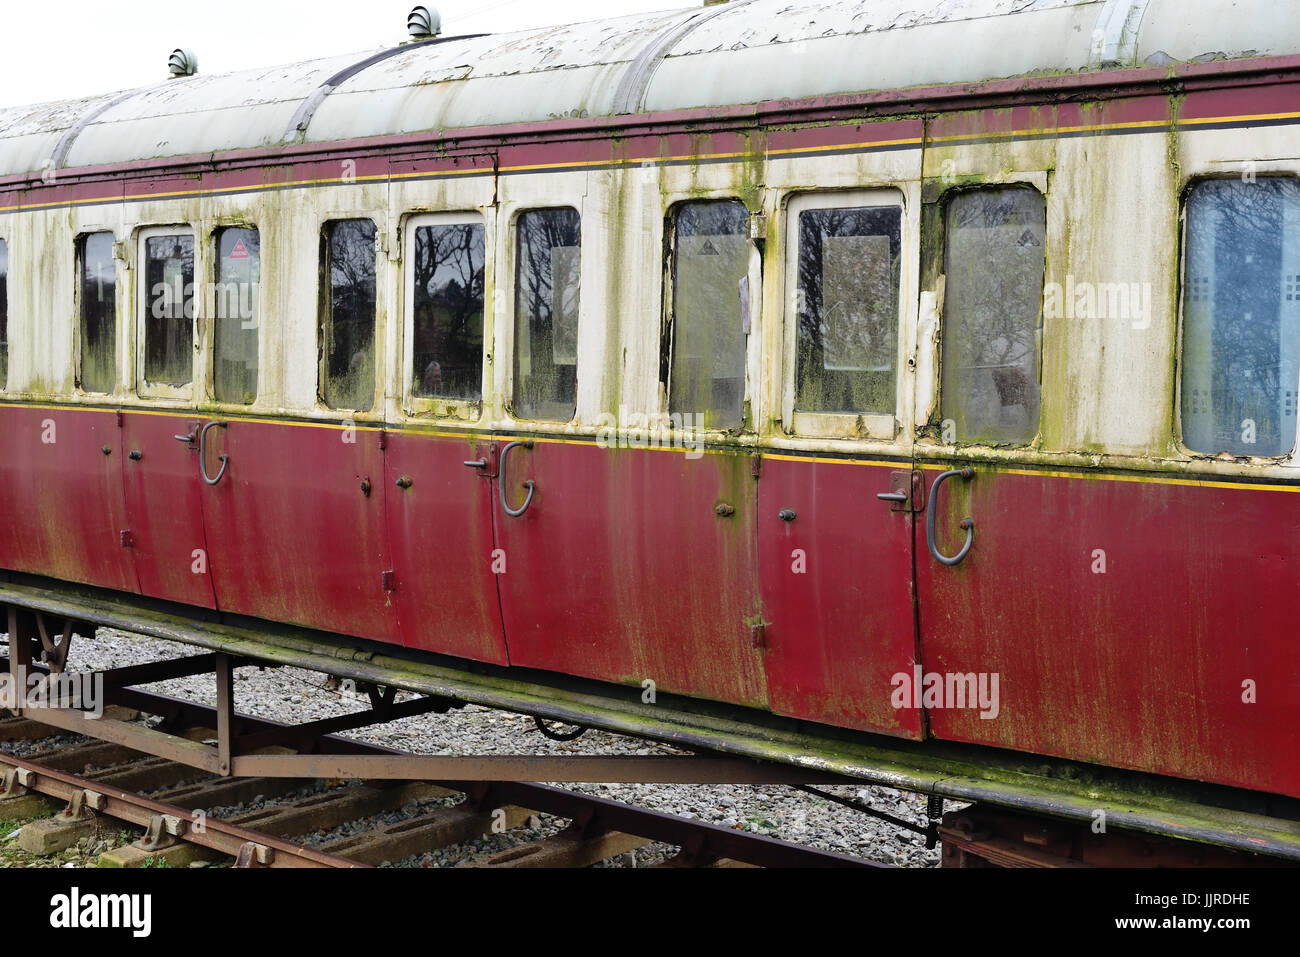 A dilapidated railway carriage awaiting restoration. - Stock Image